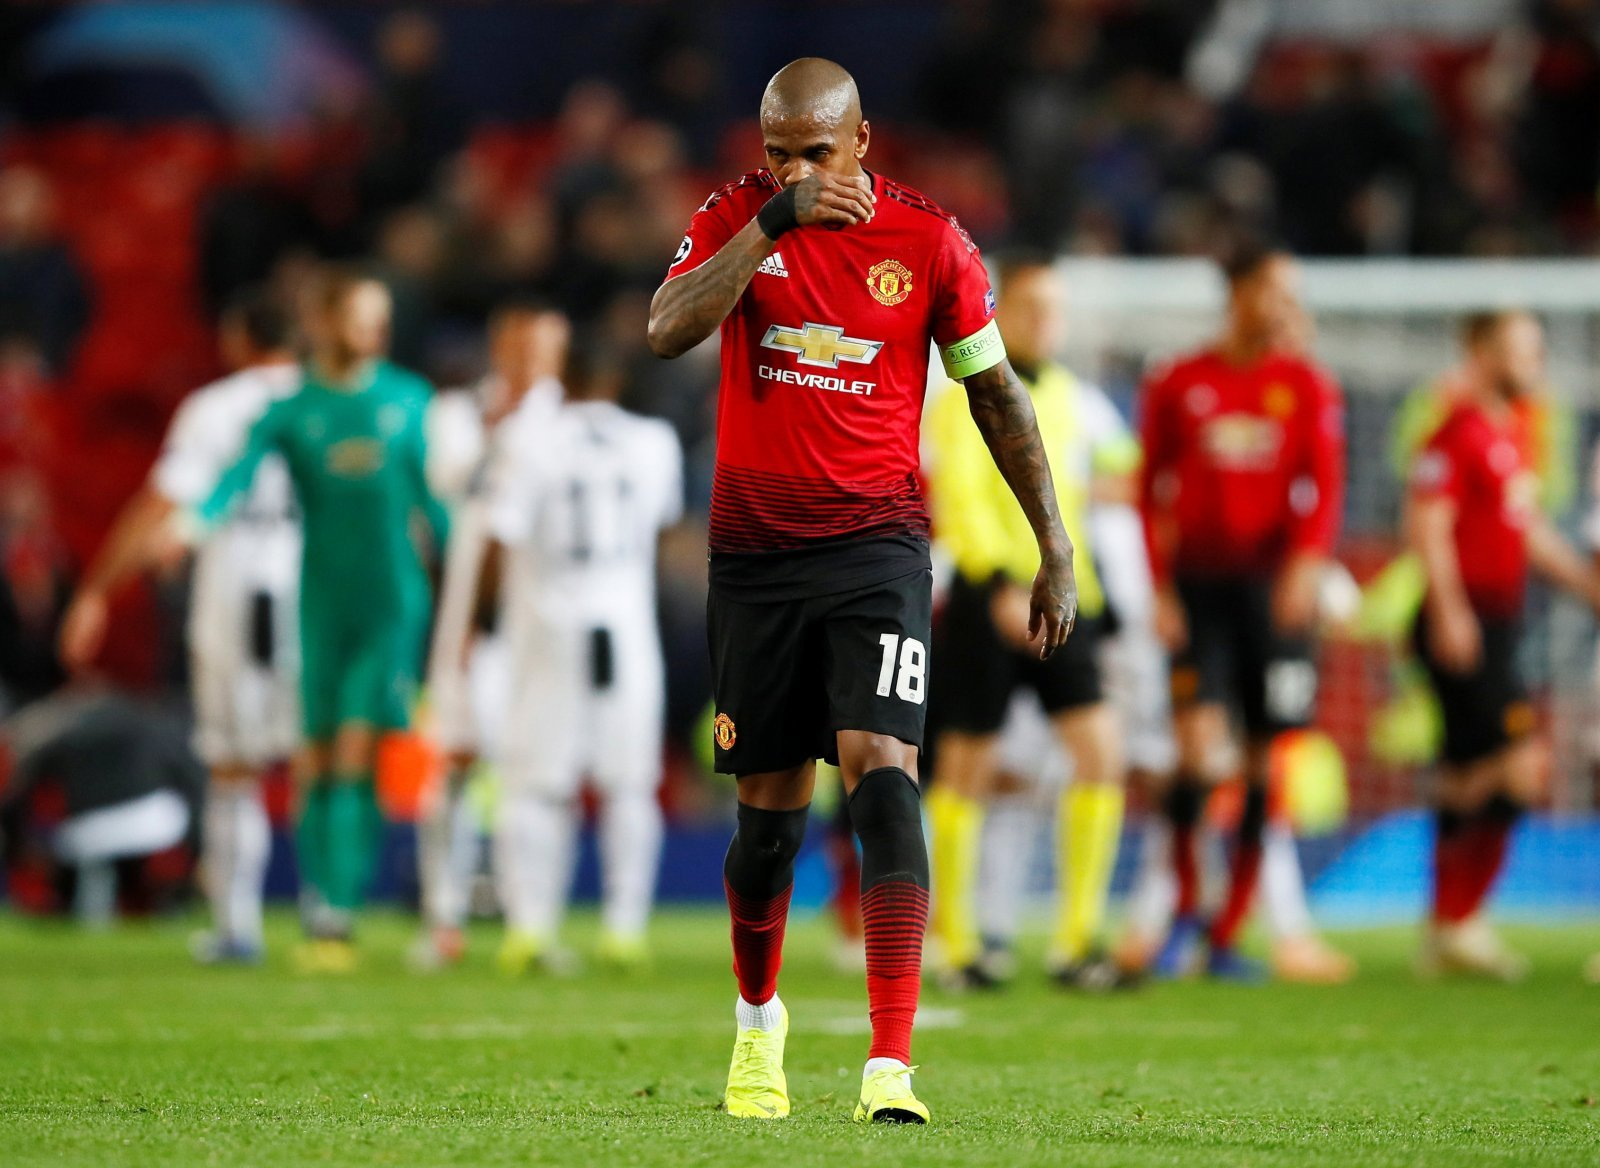 Ashley Young's poor form a worrying sight for Manchester United fans on Twitter